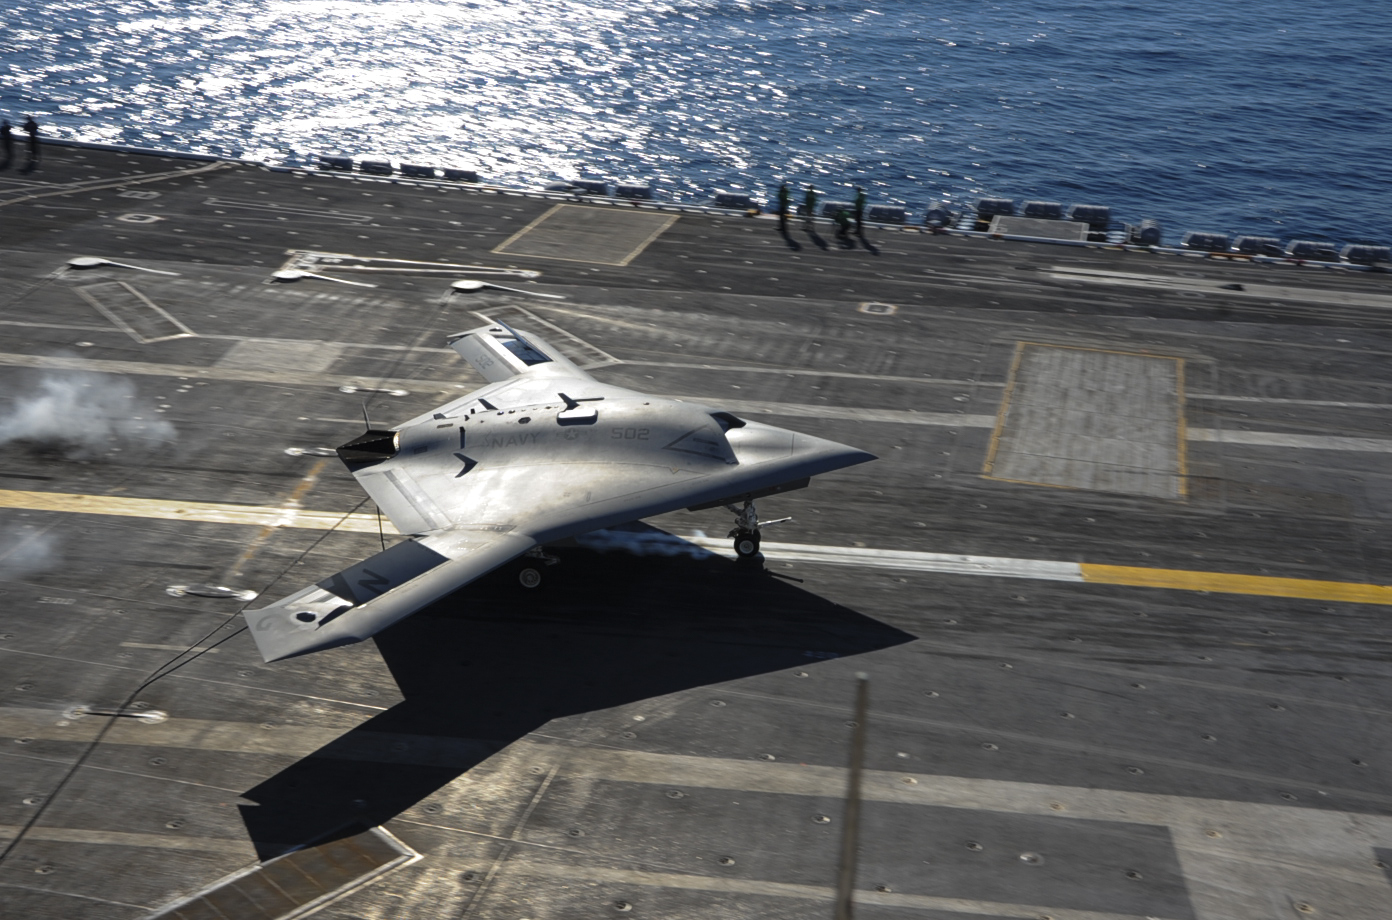 The X-47B prototype has proven to the US Navy that an autonomous drone can fit into operations on an aircraft carrier.